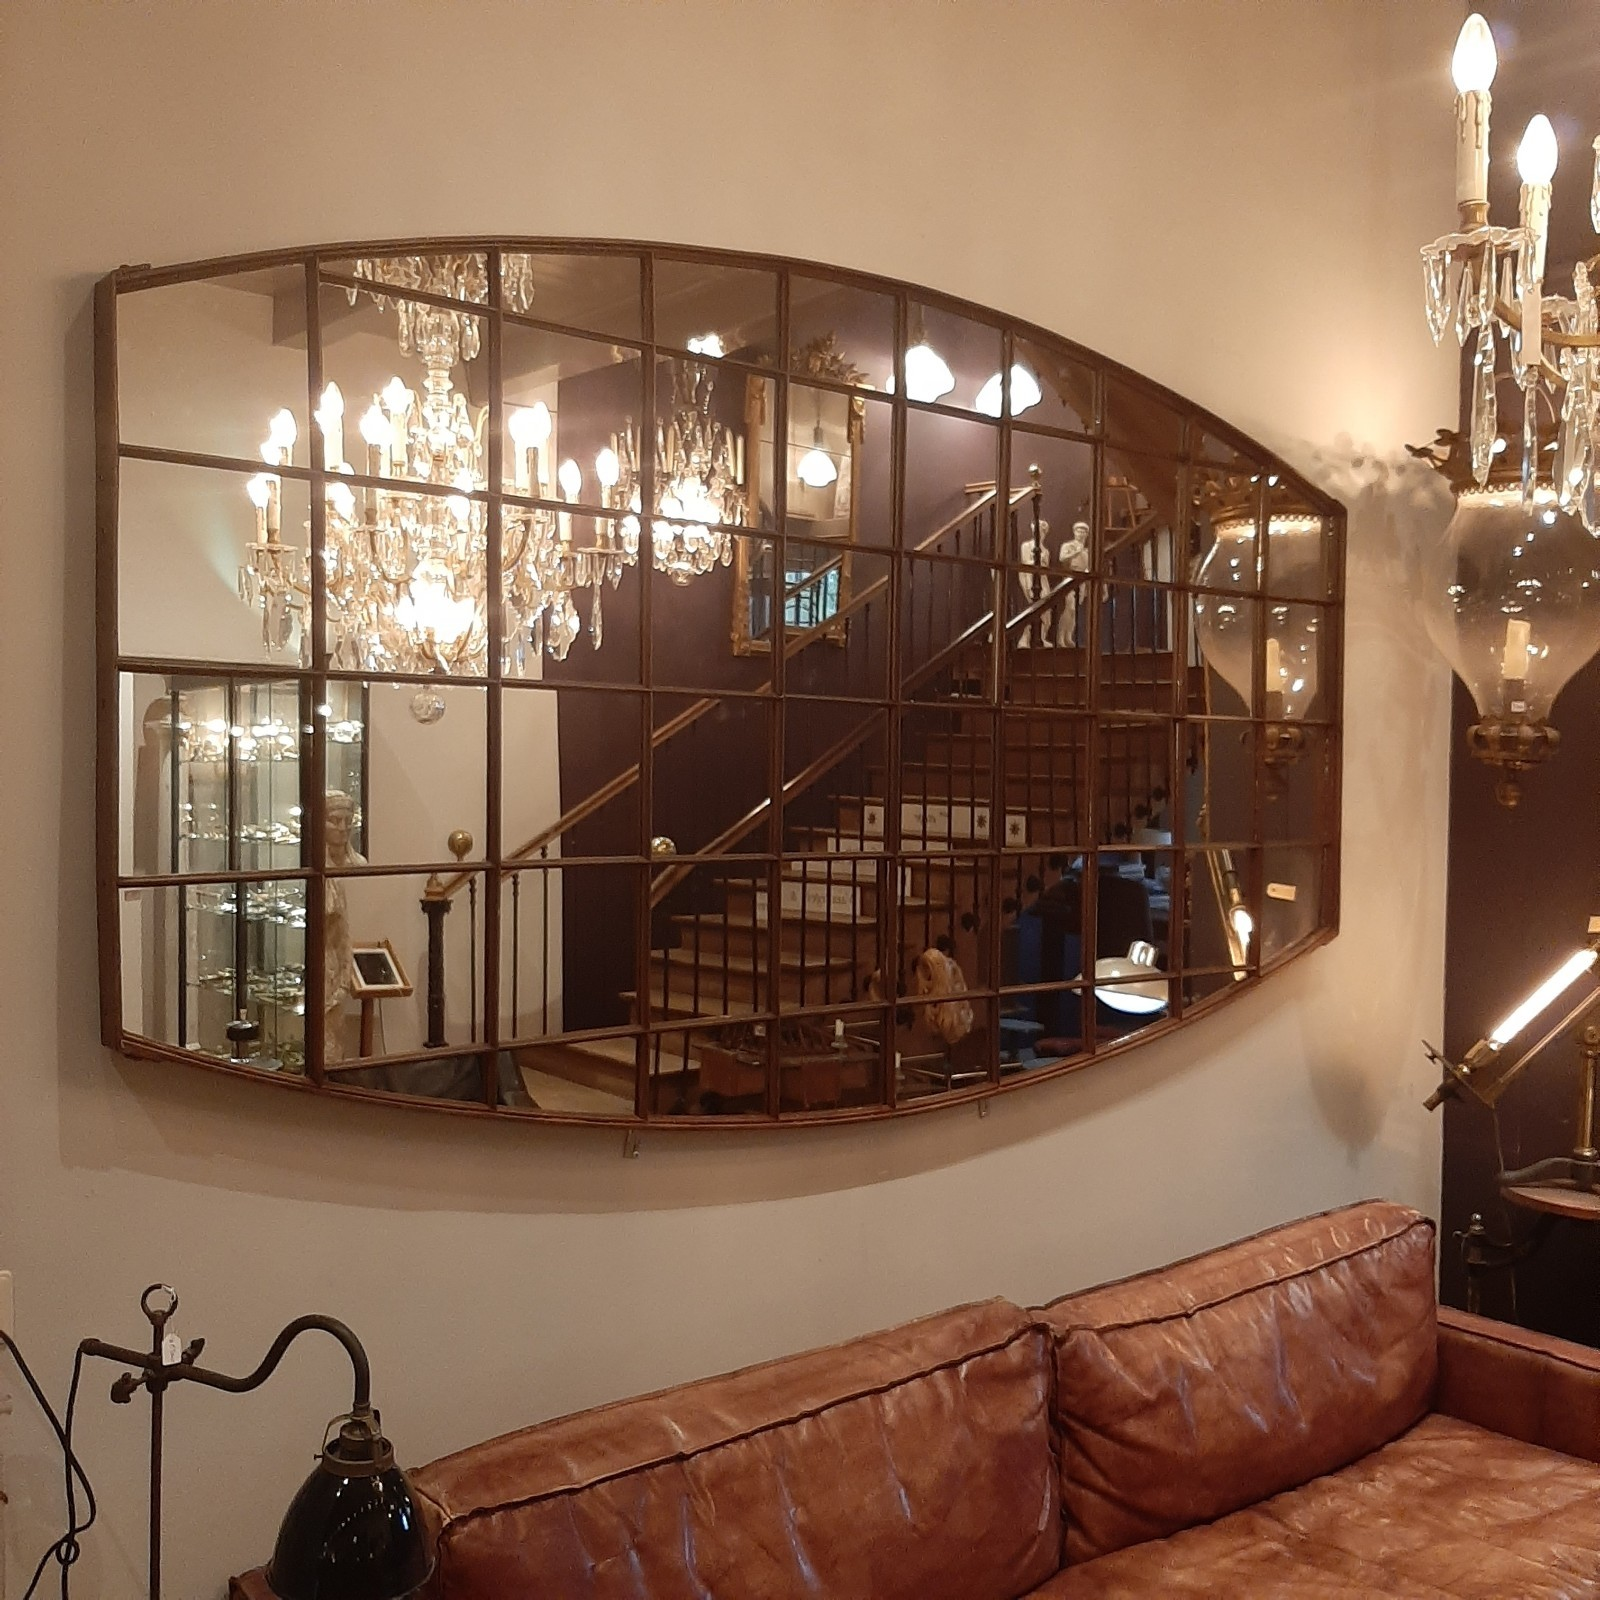 Very large mirror made from old iron factory window